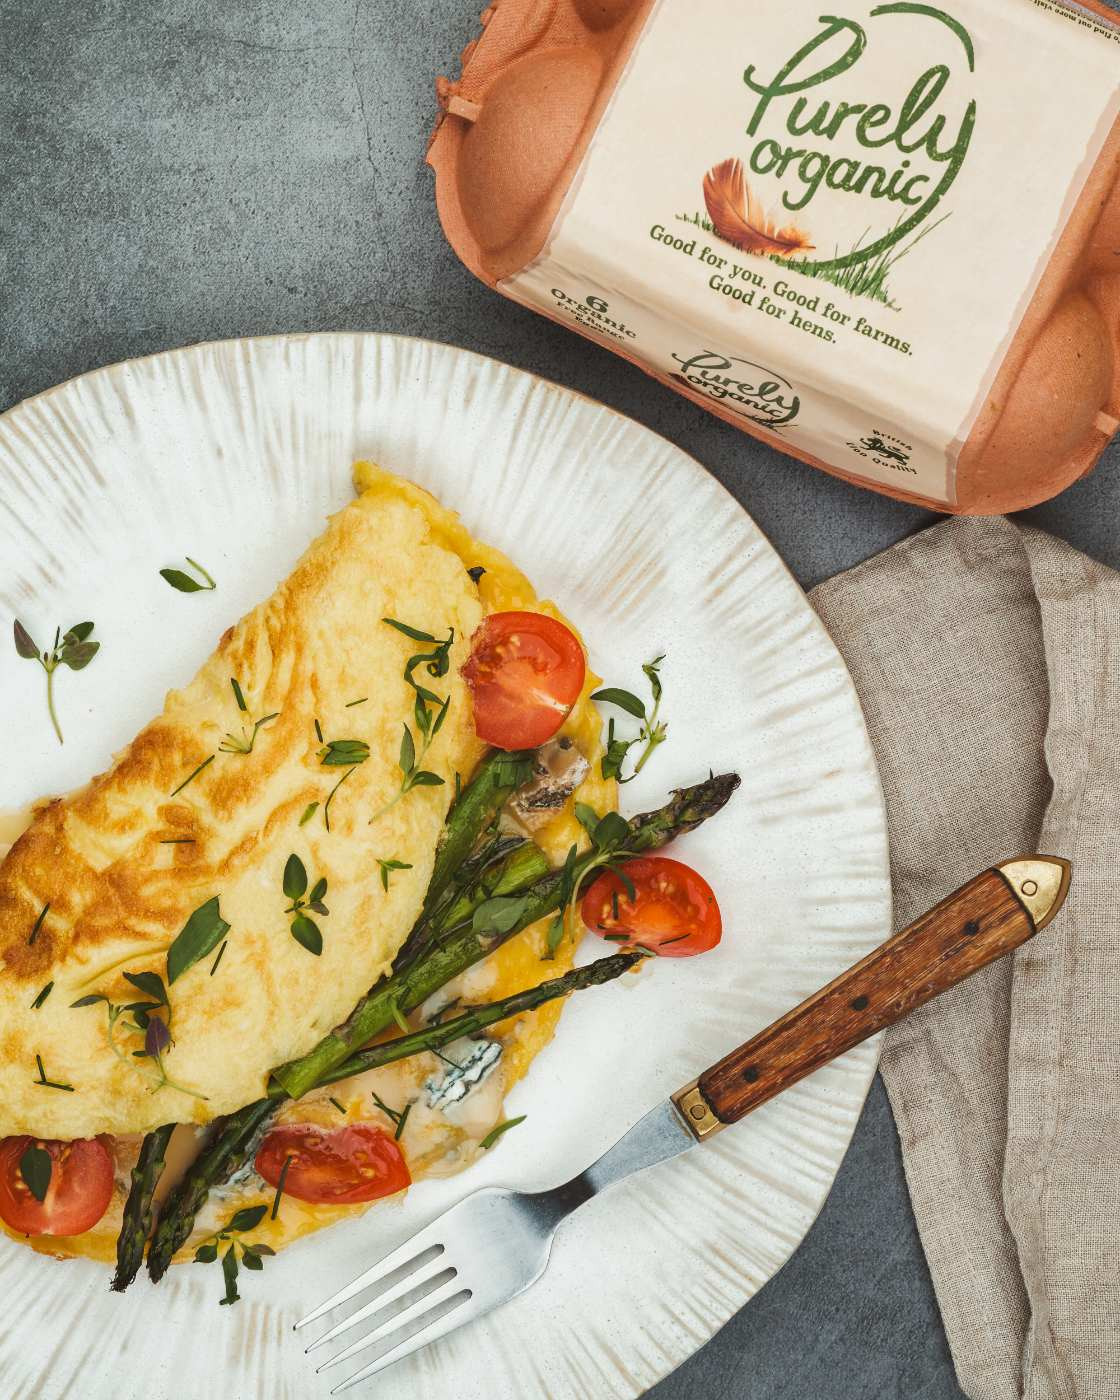 Gorgonzola Omelette with purely organic eggs pack